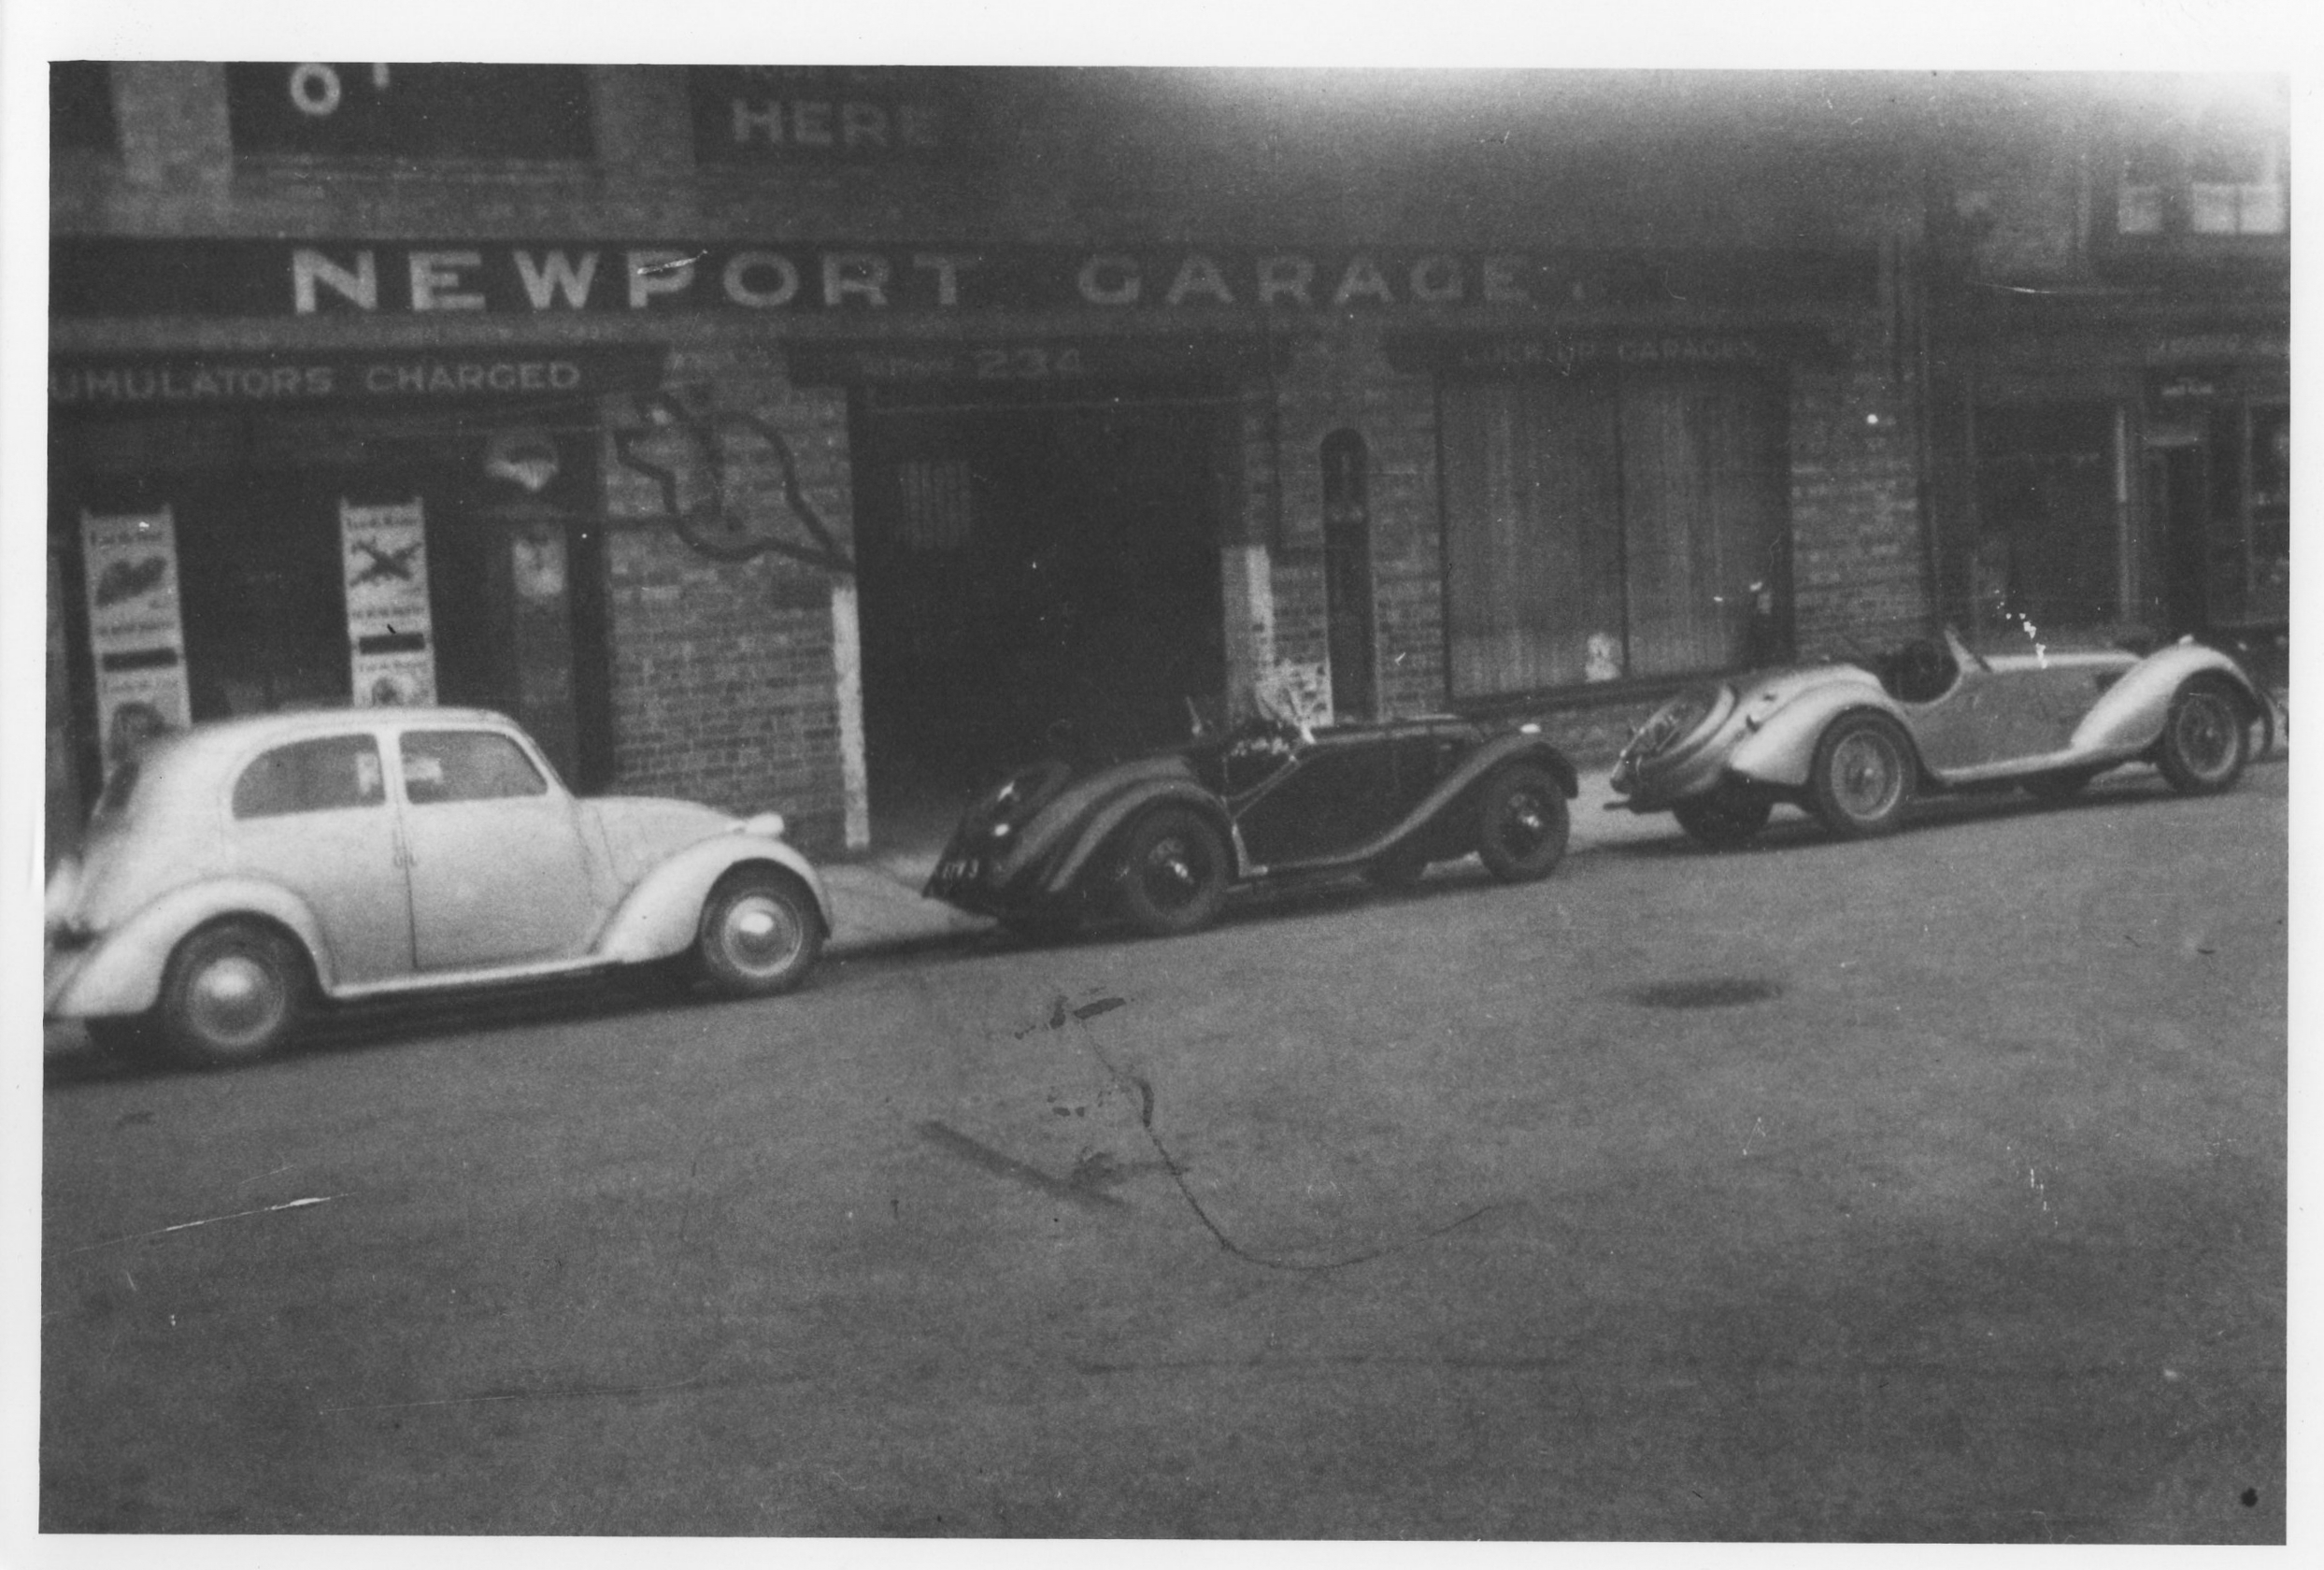 """Fiat """"Topolino"""", 328 BMW (badged Frazer Nash) and the fabulous Alfa 2.9 (all three cars Crook) at the Newport Garage in Lincoln"""